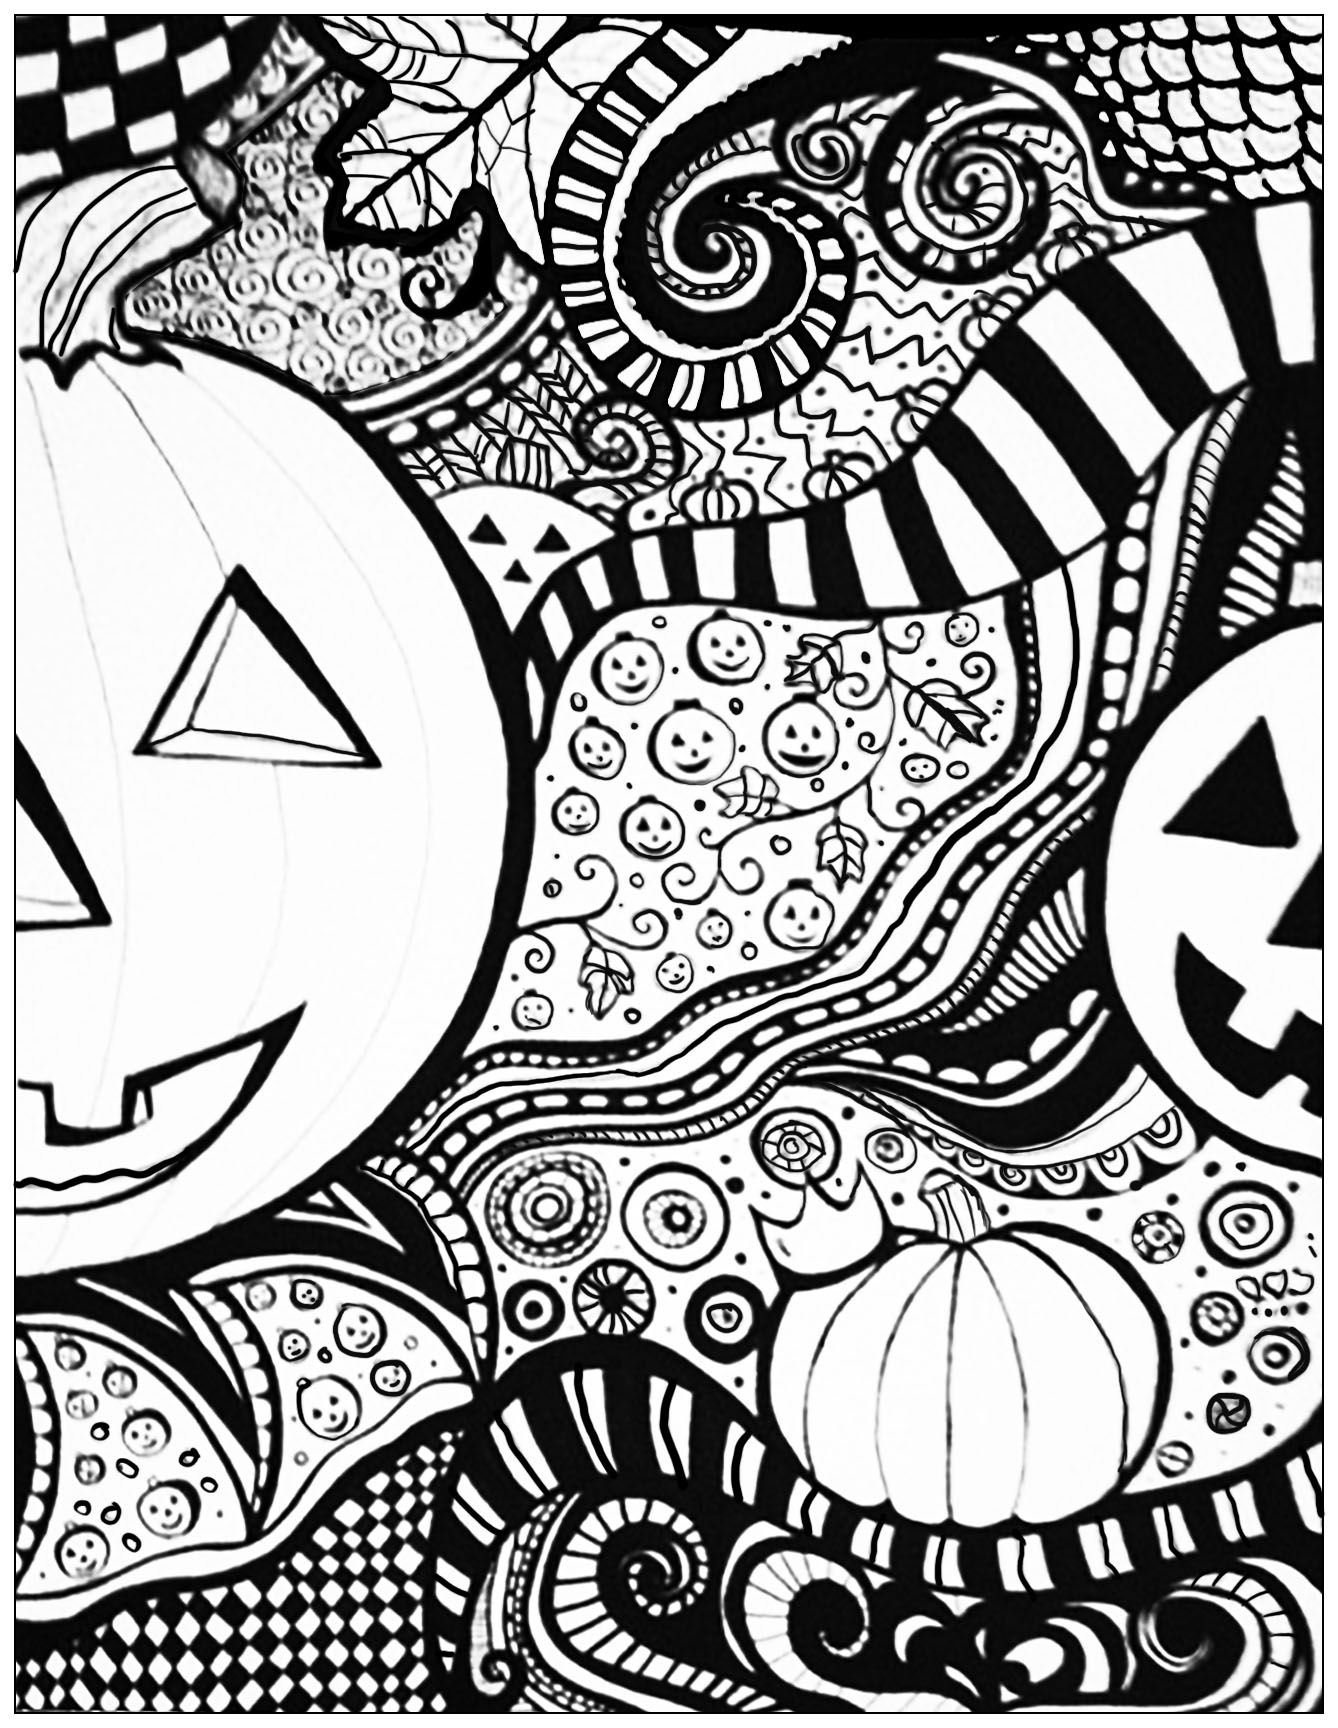 coloring adult halloween coloring sheet - Halloween Coloring Page